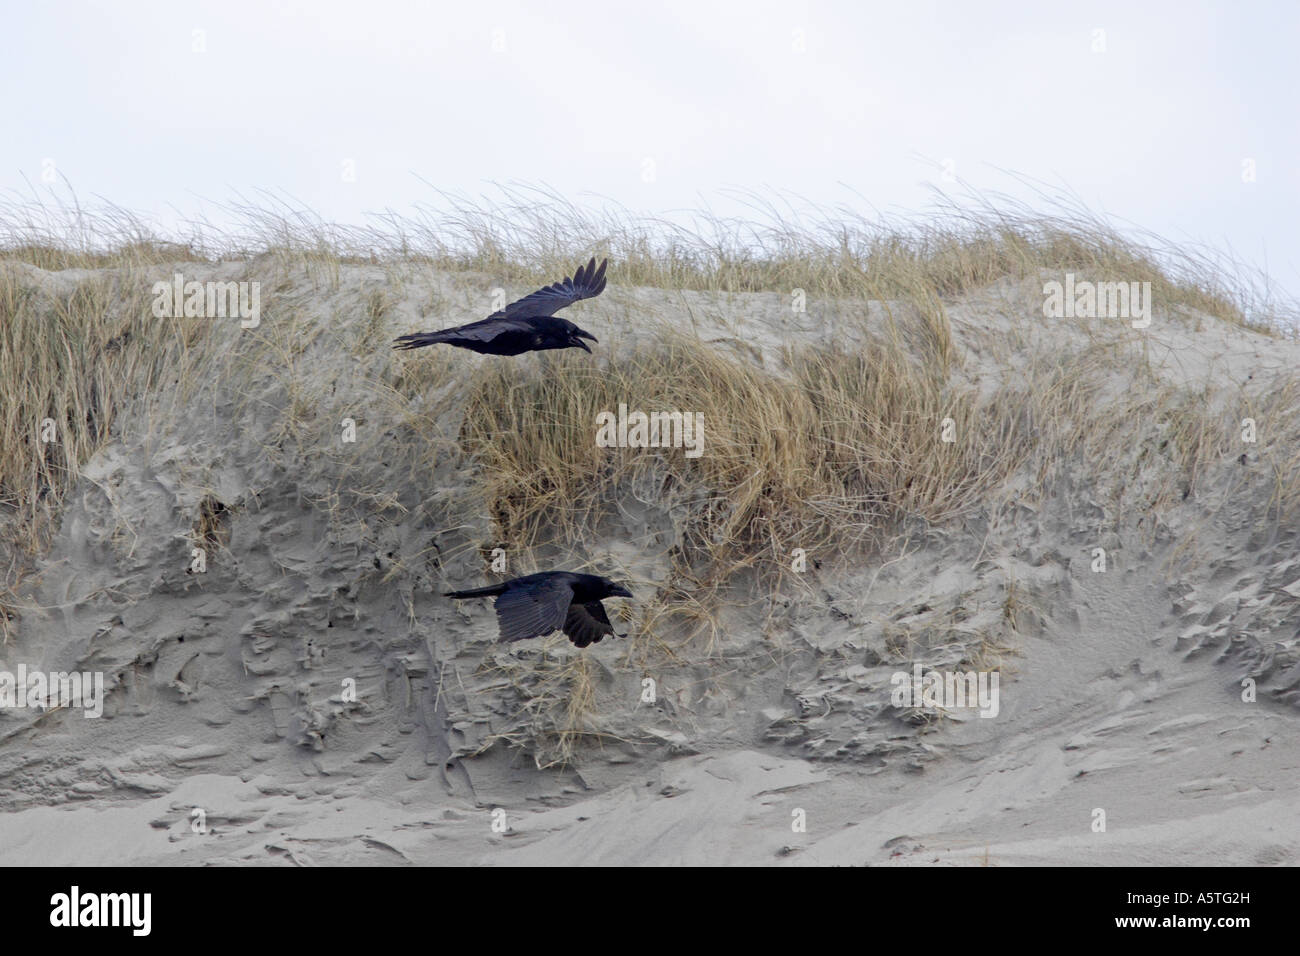 Two Ravens flying over sand dunes in the Outer Hebrides Stock Photo